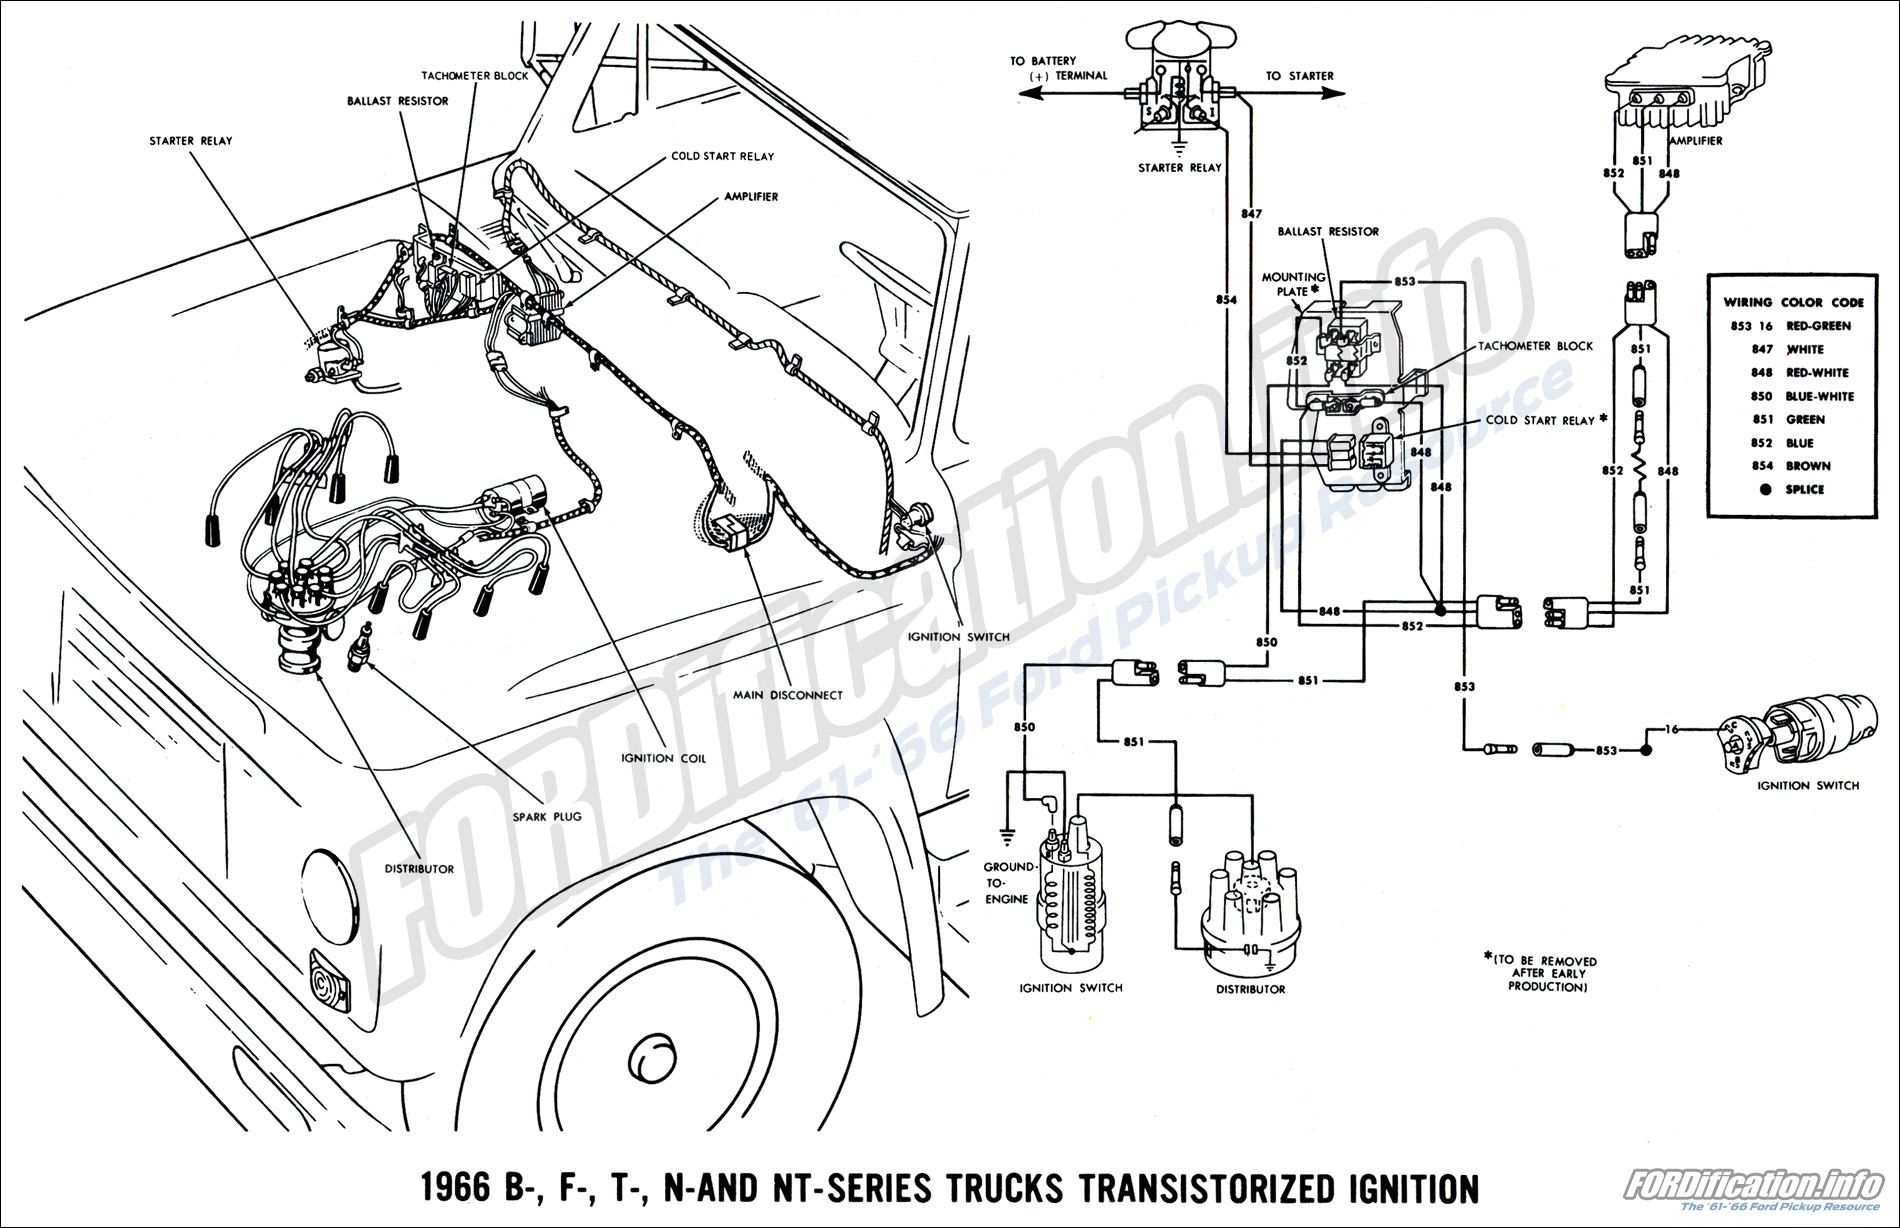 [TBQL_4184]  1966 Ford Truck Wiring Diagrams - FORDification.info - The '61-'66 Ford  Pickup Resource | 1966 Ford F100 Wiring Diagram |  | FORDification.info